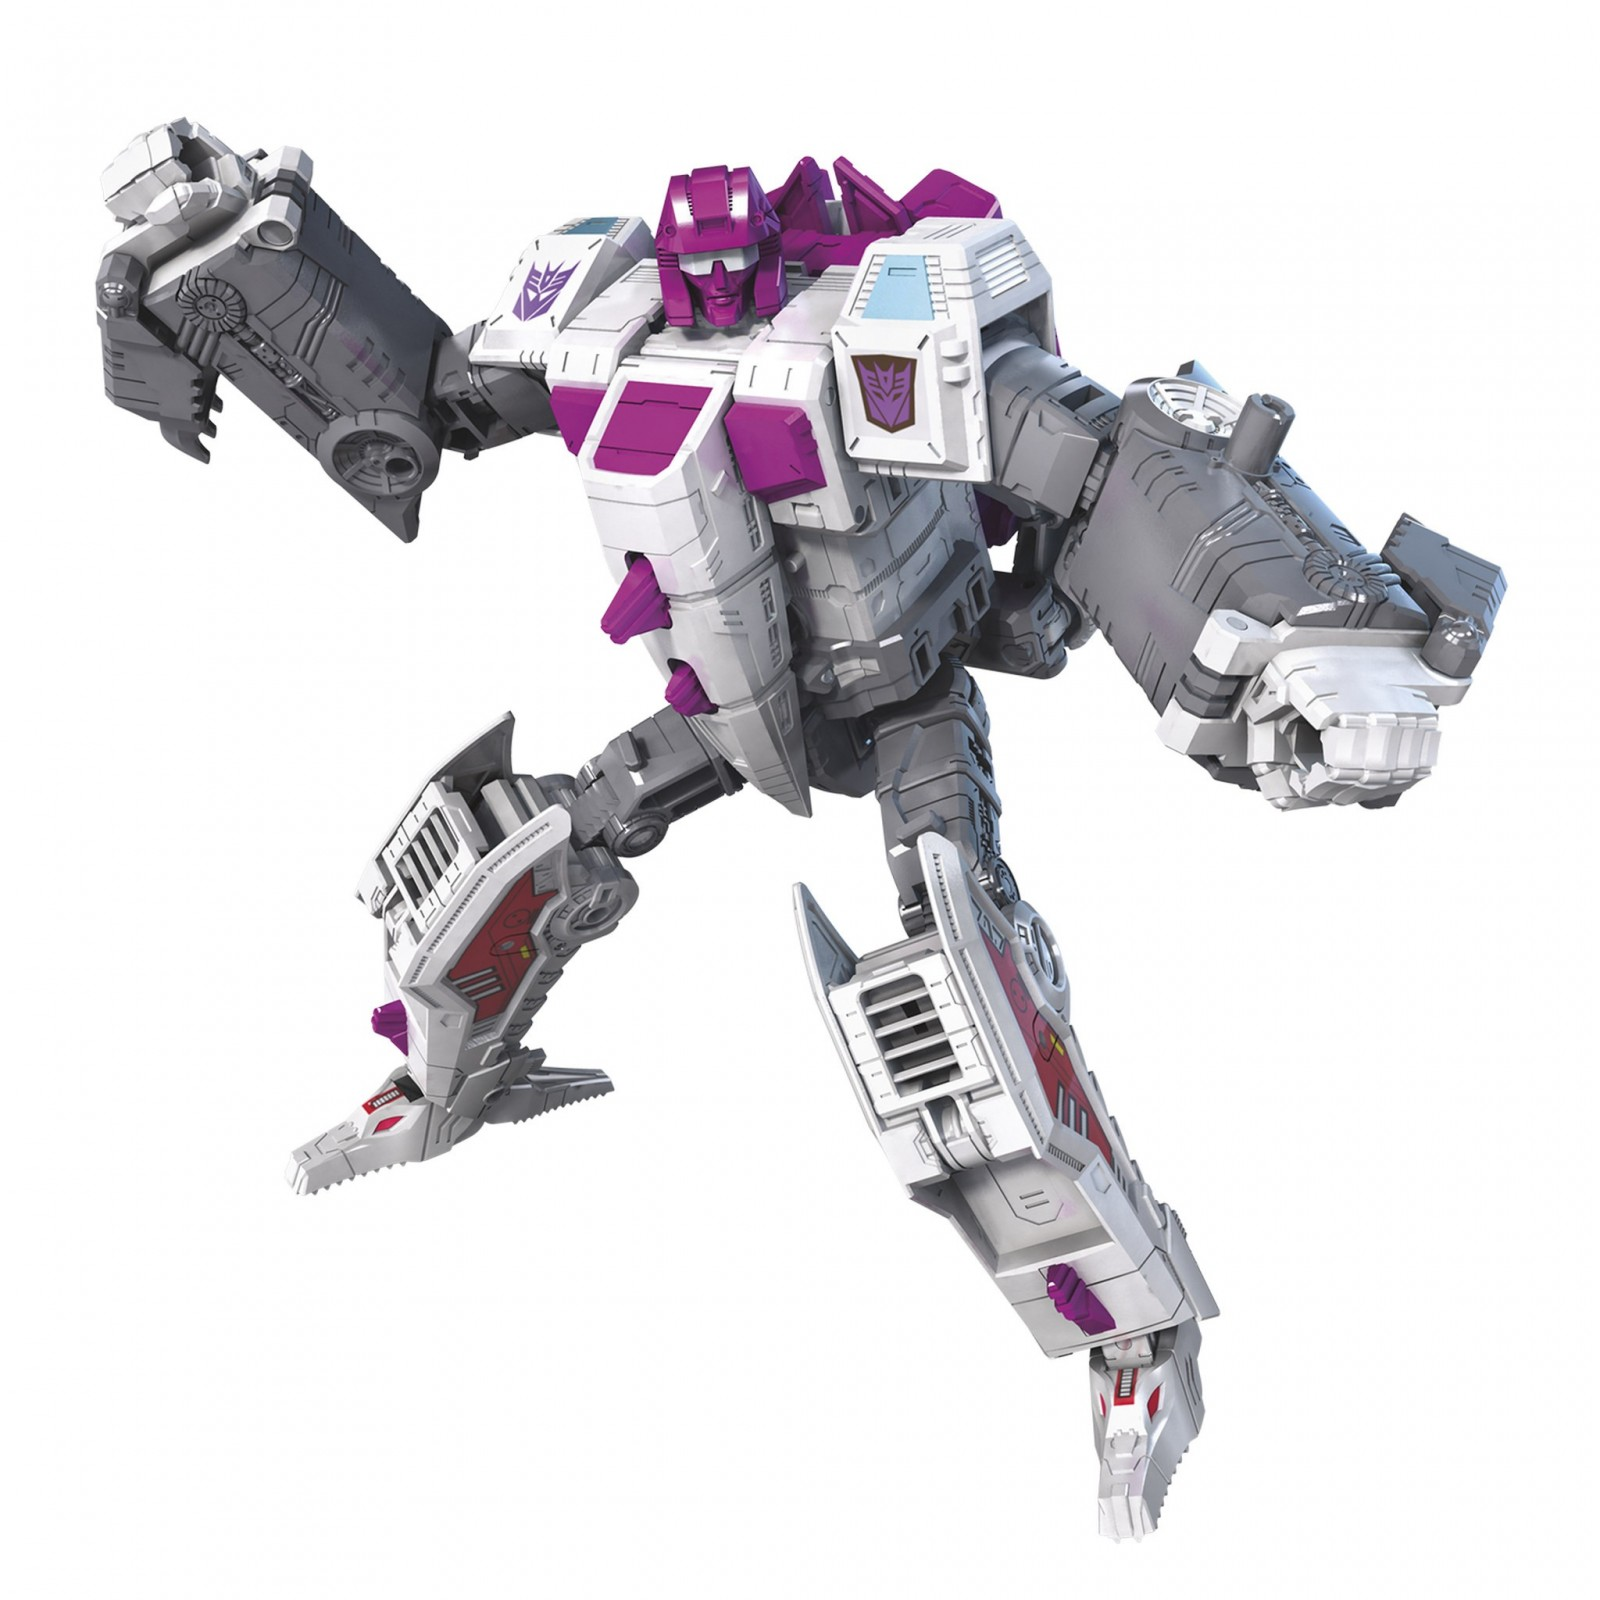 Transformers News: Official Bios and Images for #Transformers Power of the Primes Revealed at NYCC 2017 #hasbronycc